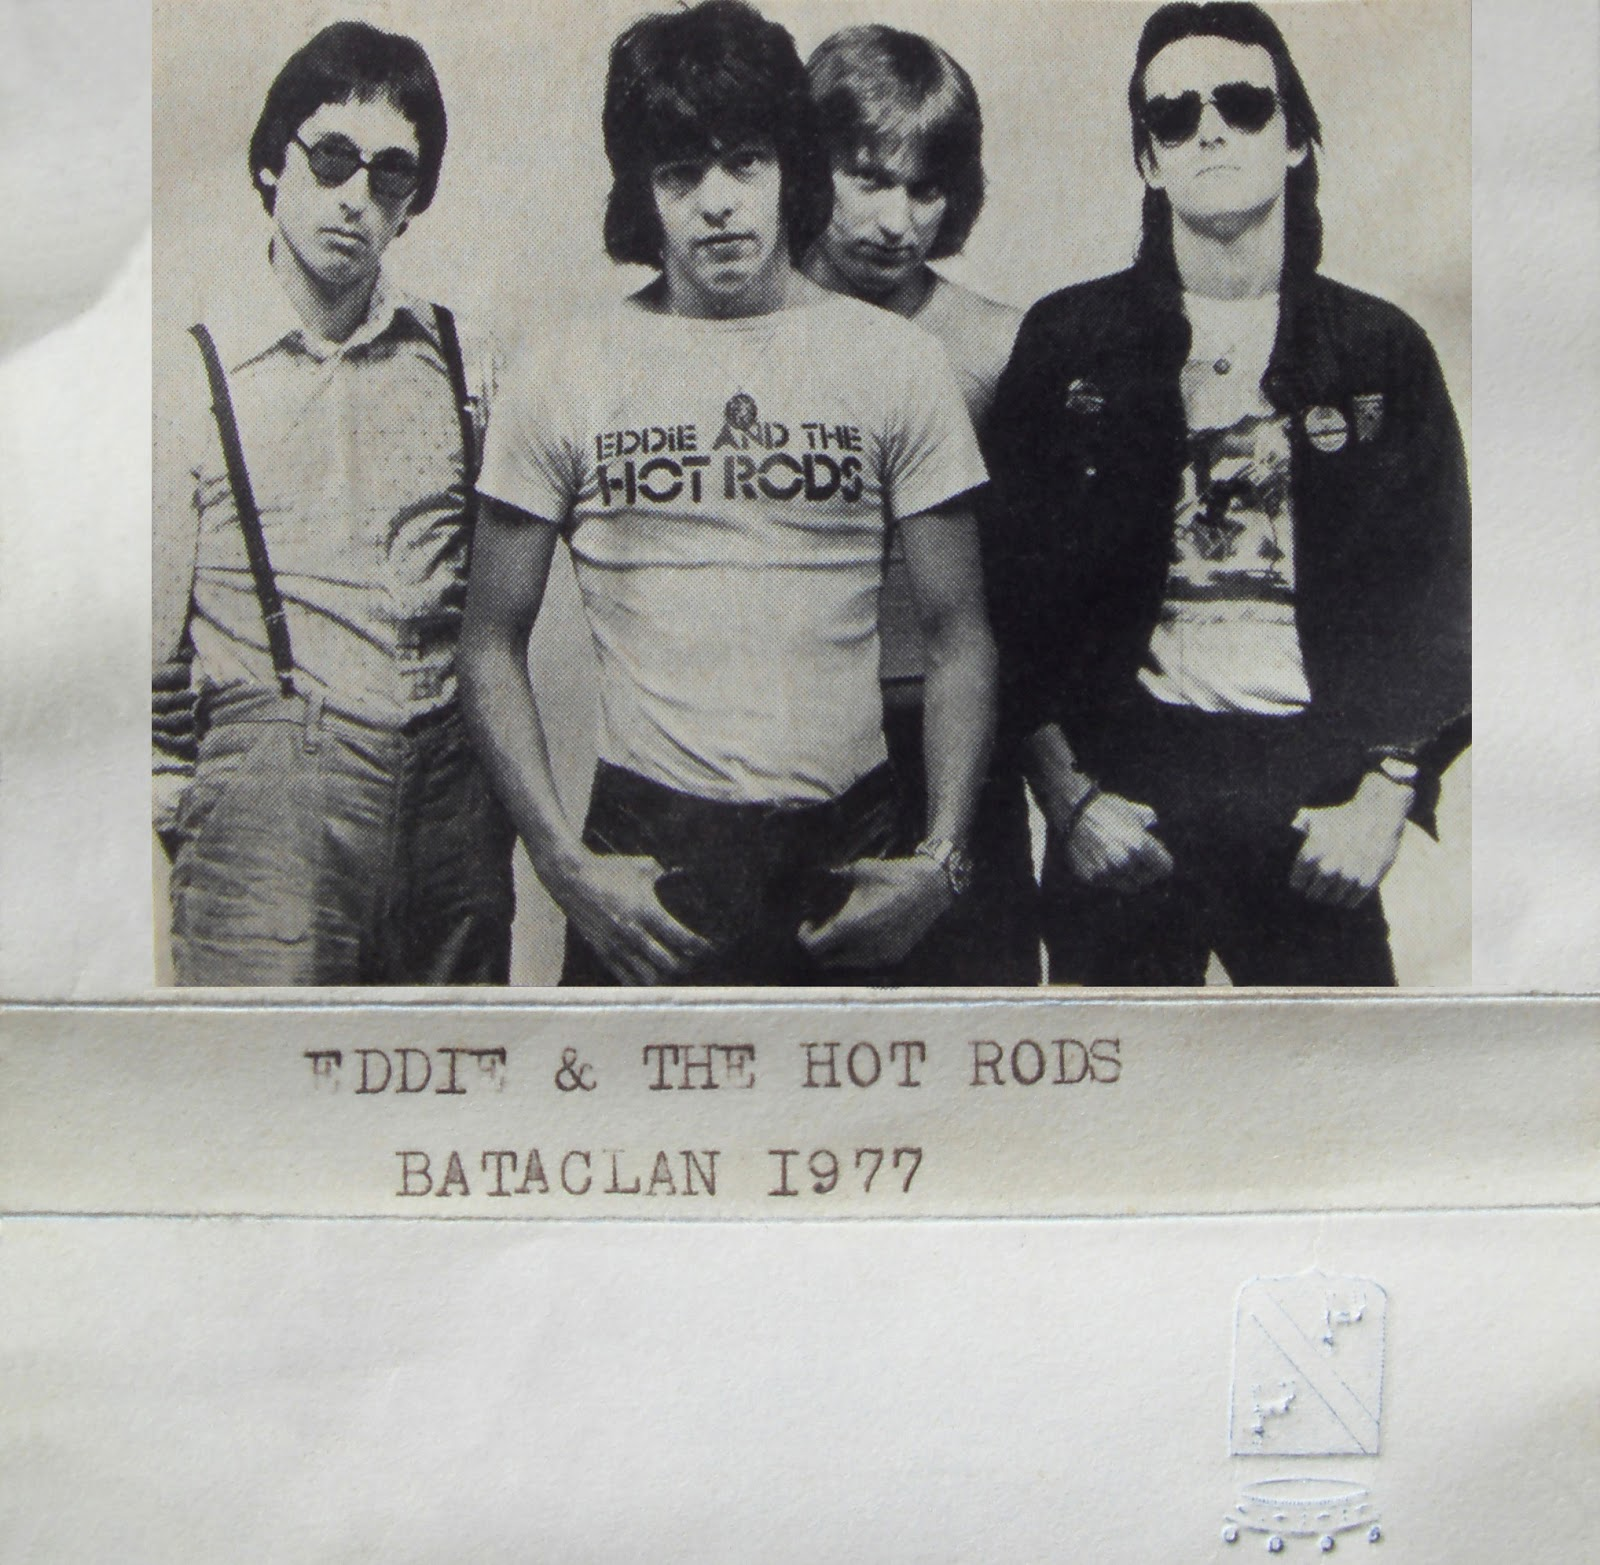 Eddie+And+The+Hot+Rods+-+1977+Paris+Bataclan+A